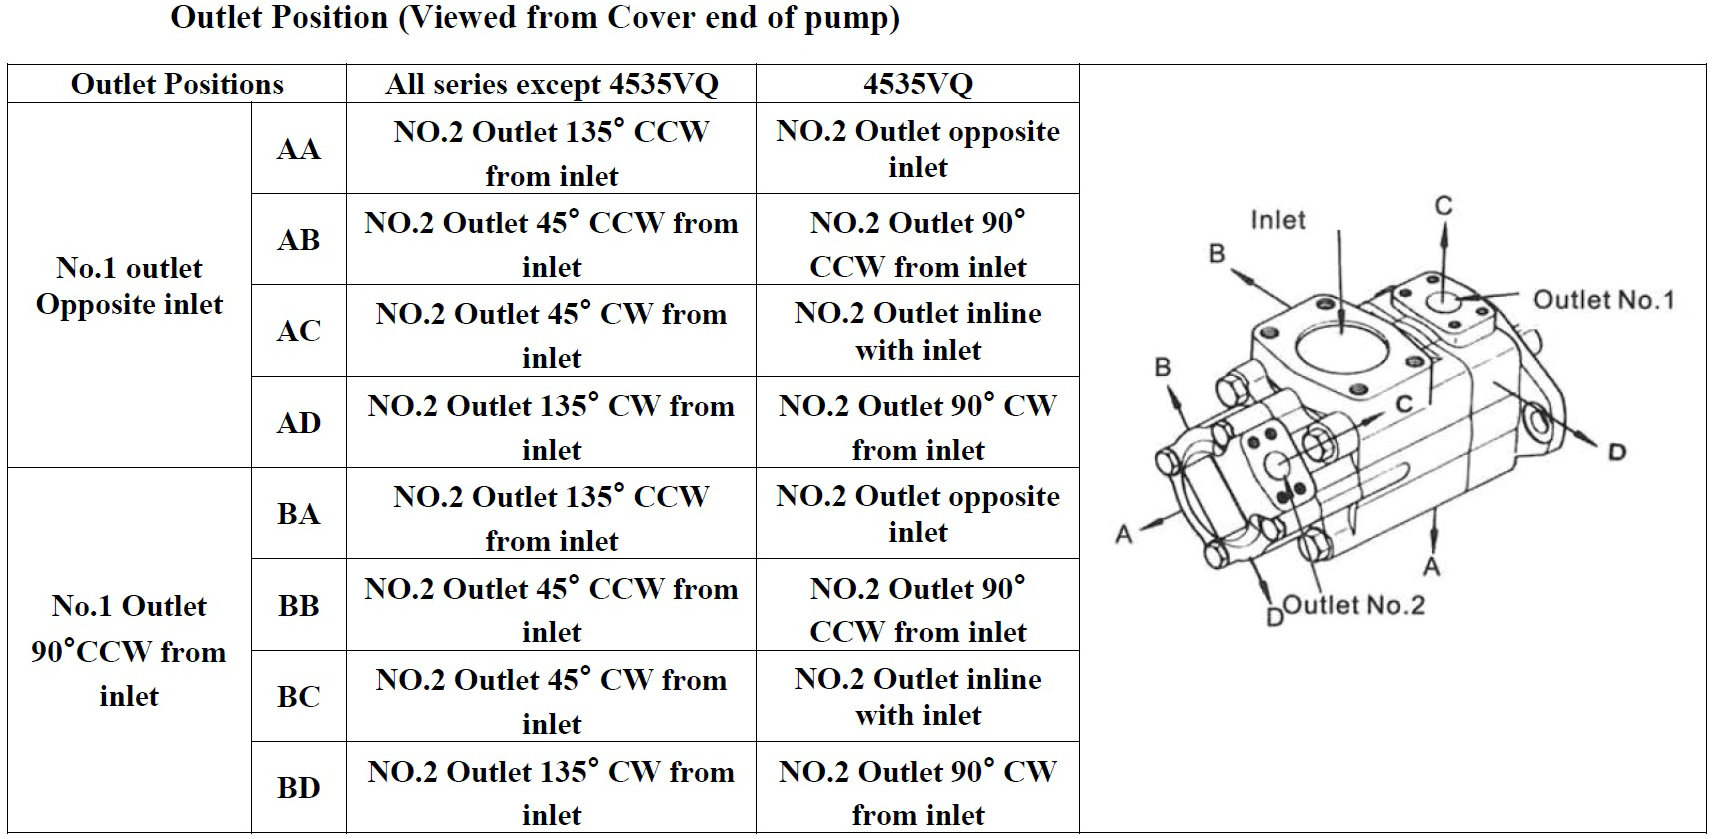 VQ Outlet position1